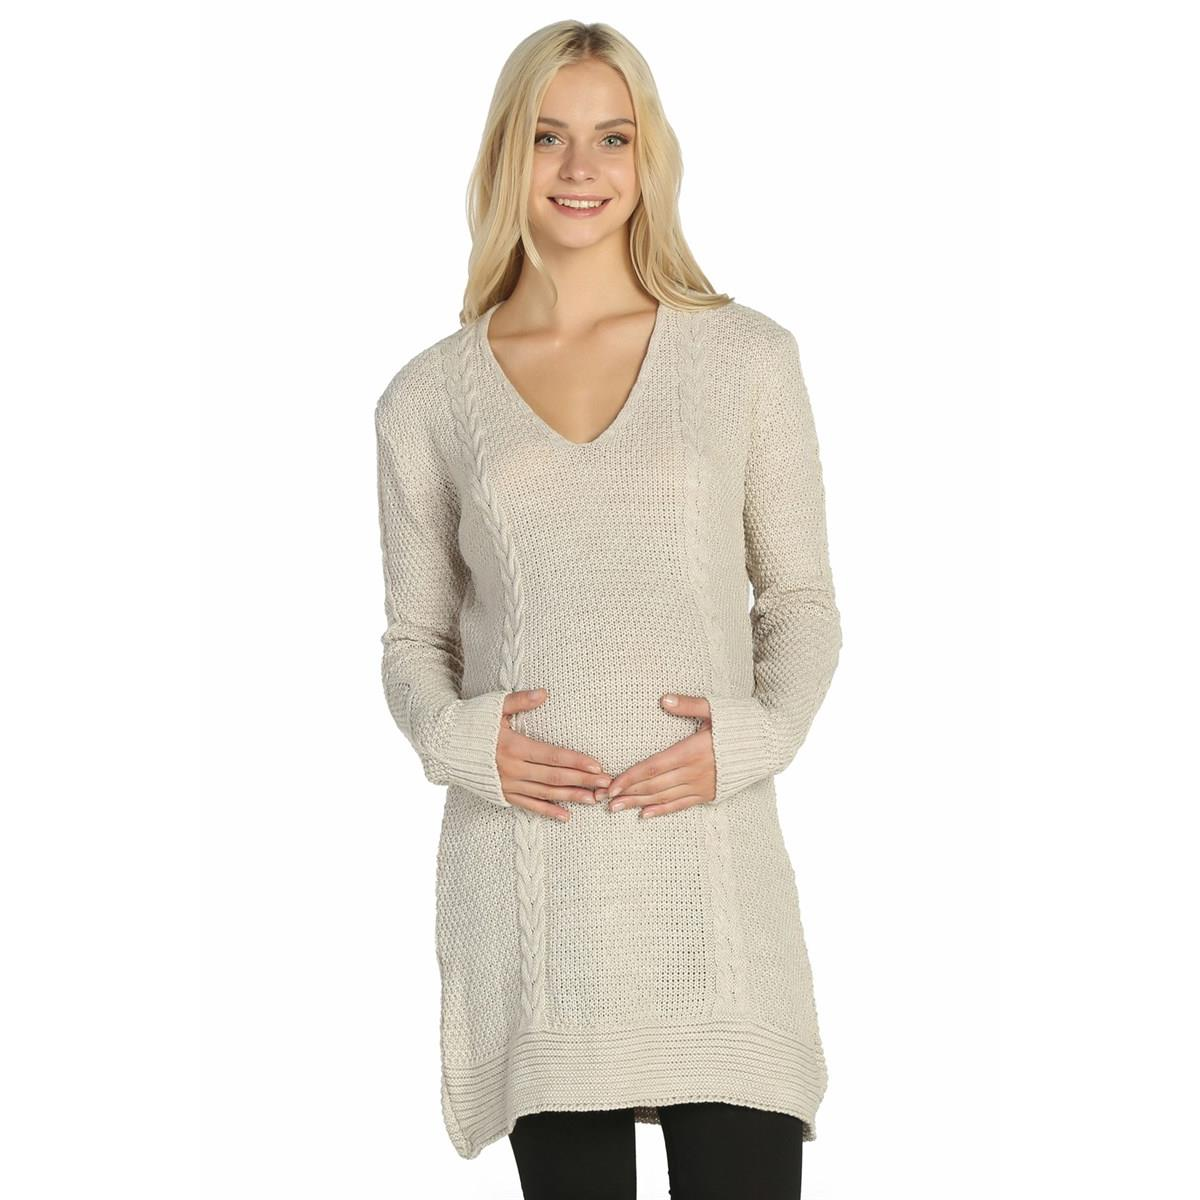 LuvmaBelly Pregnant 7025_7029 Sweater